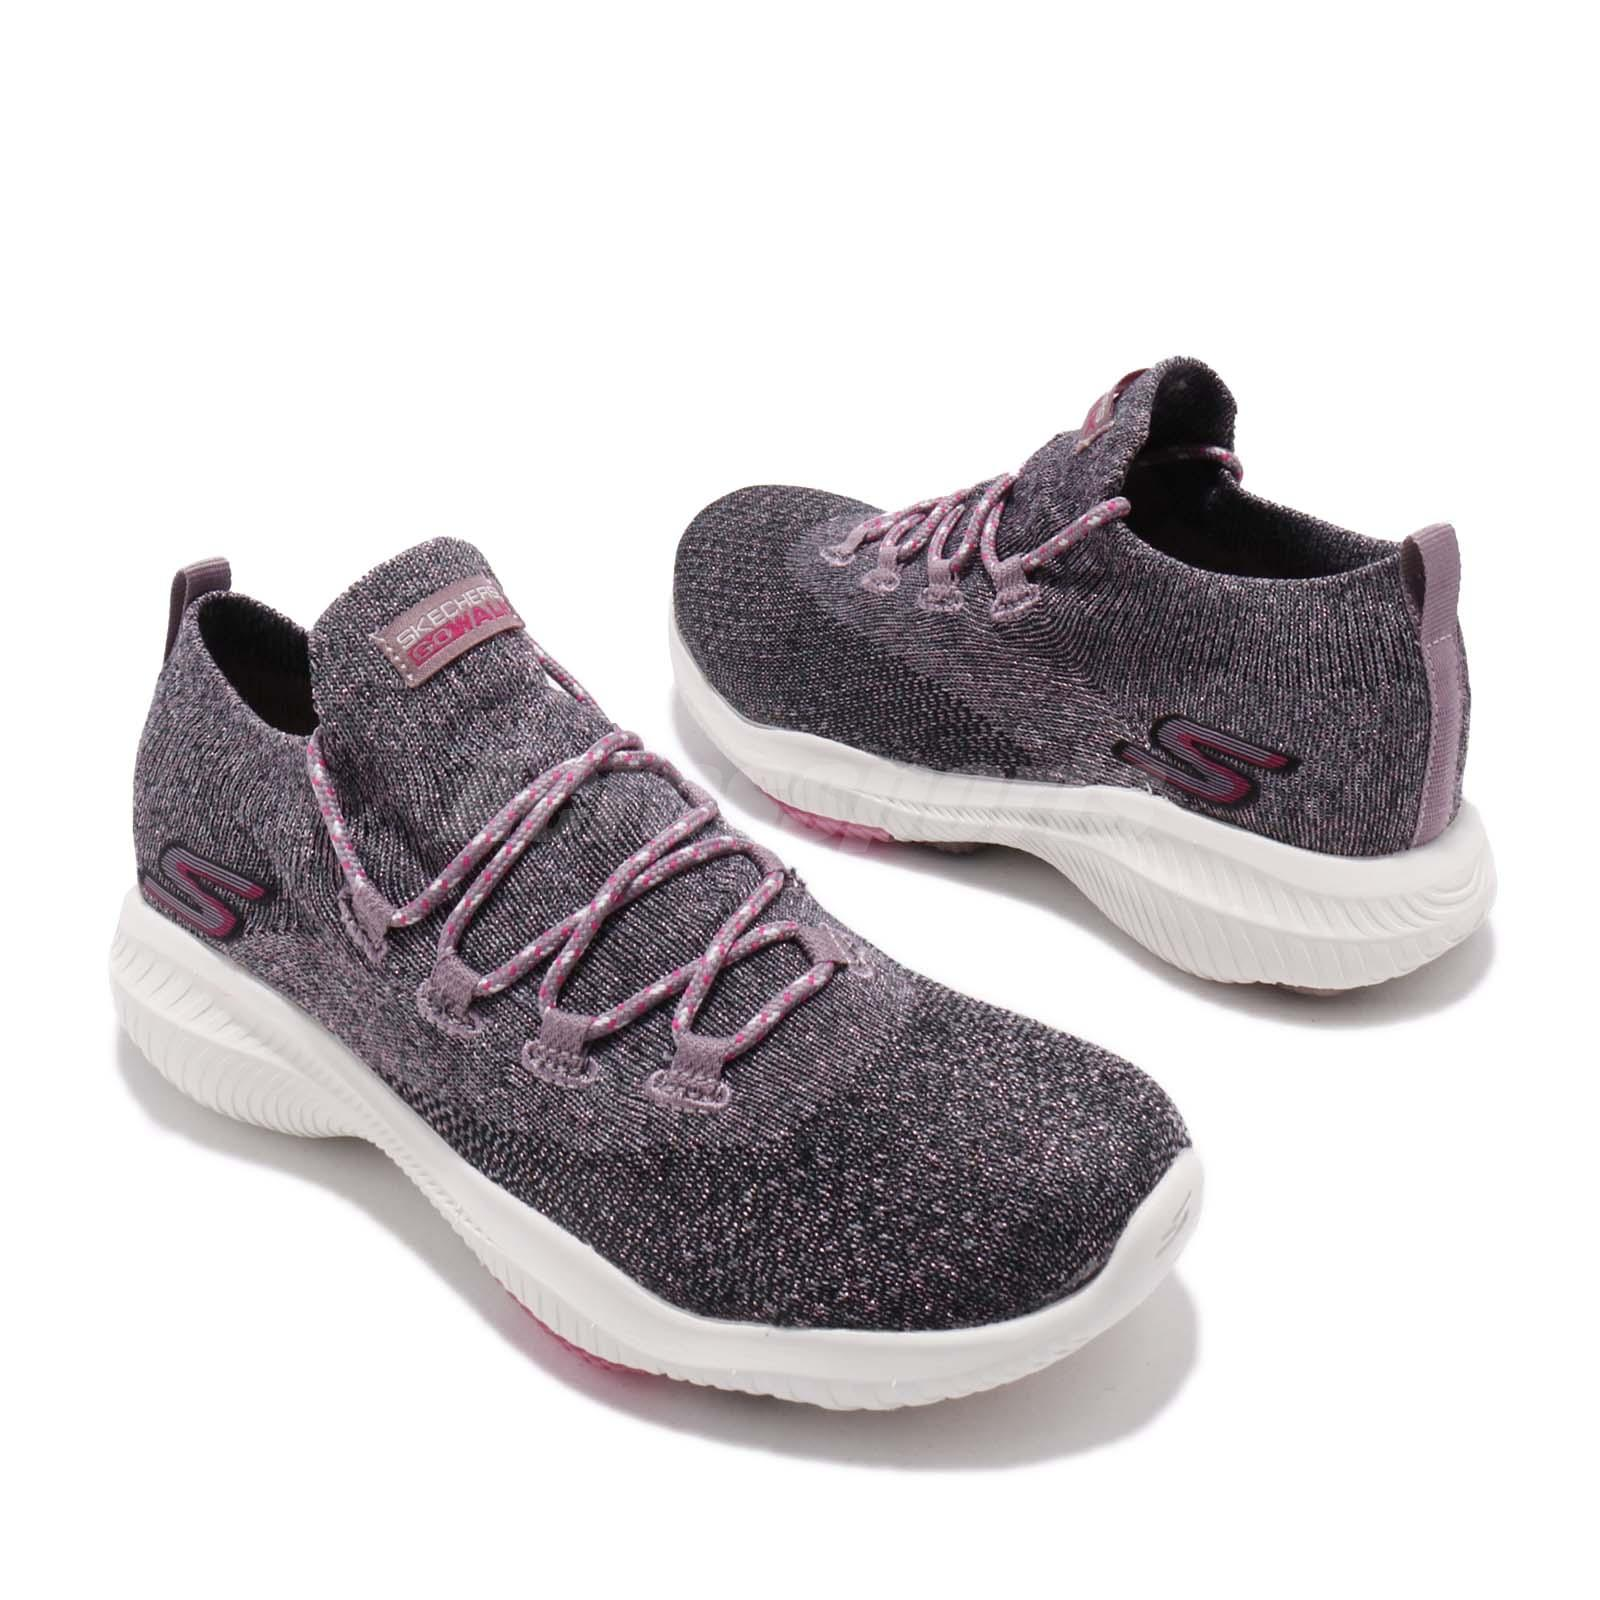 Details about Skechers Go Walk Revolution Ultra Ventured Black Pink Women Shoes 15670 BKPK